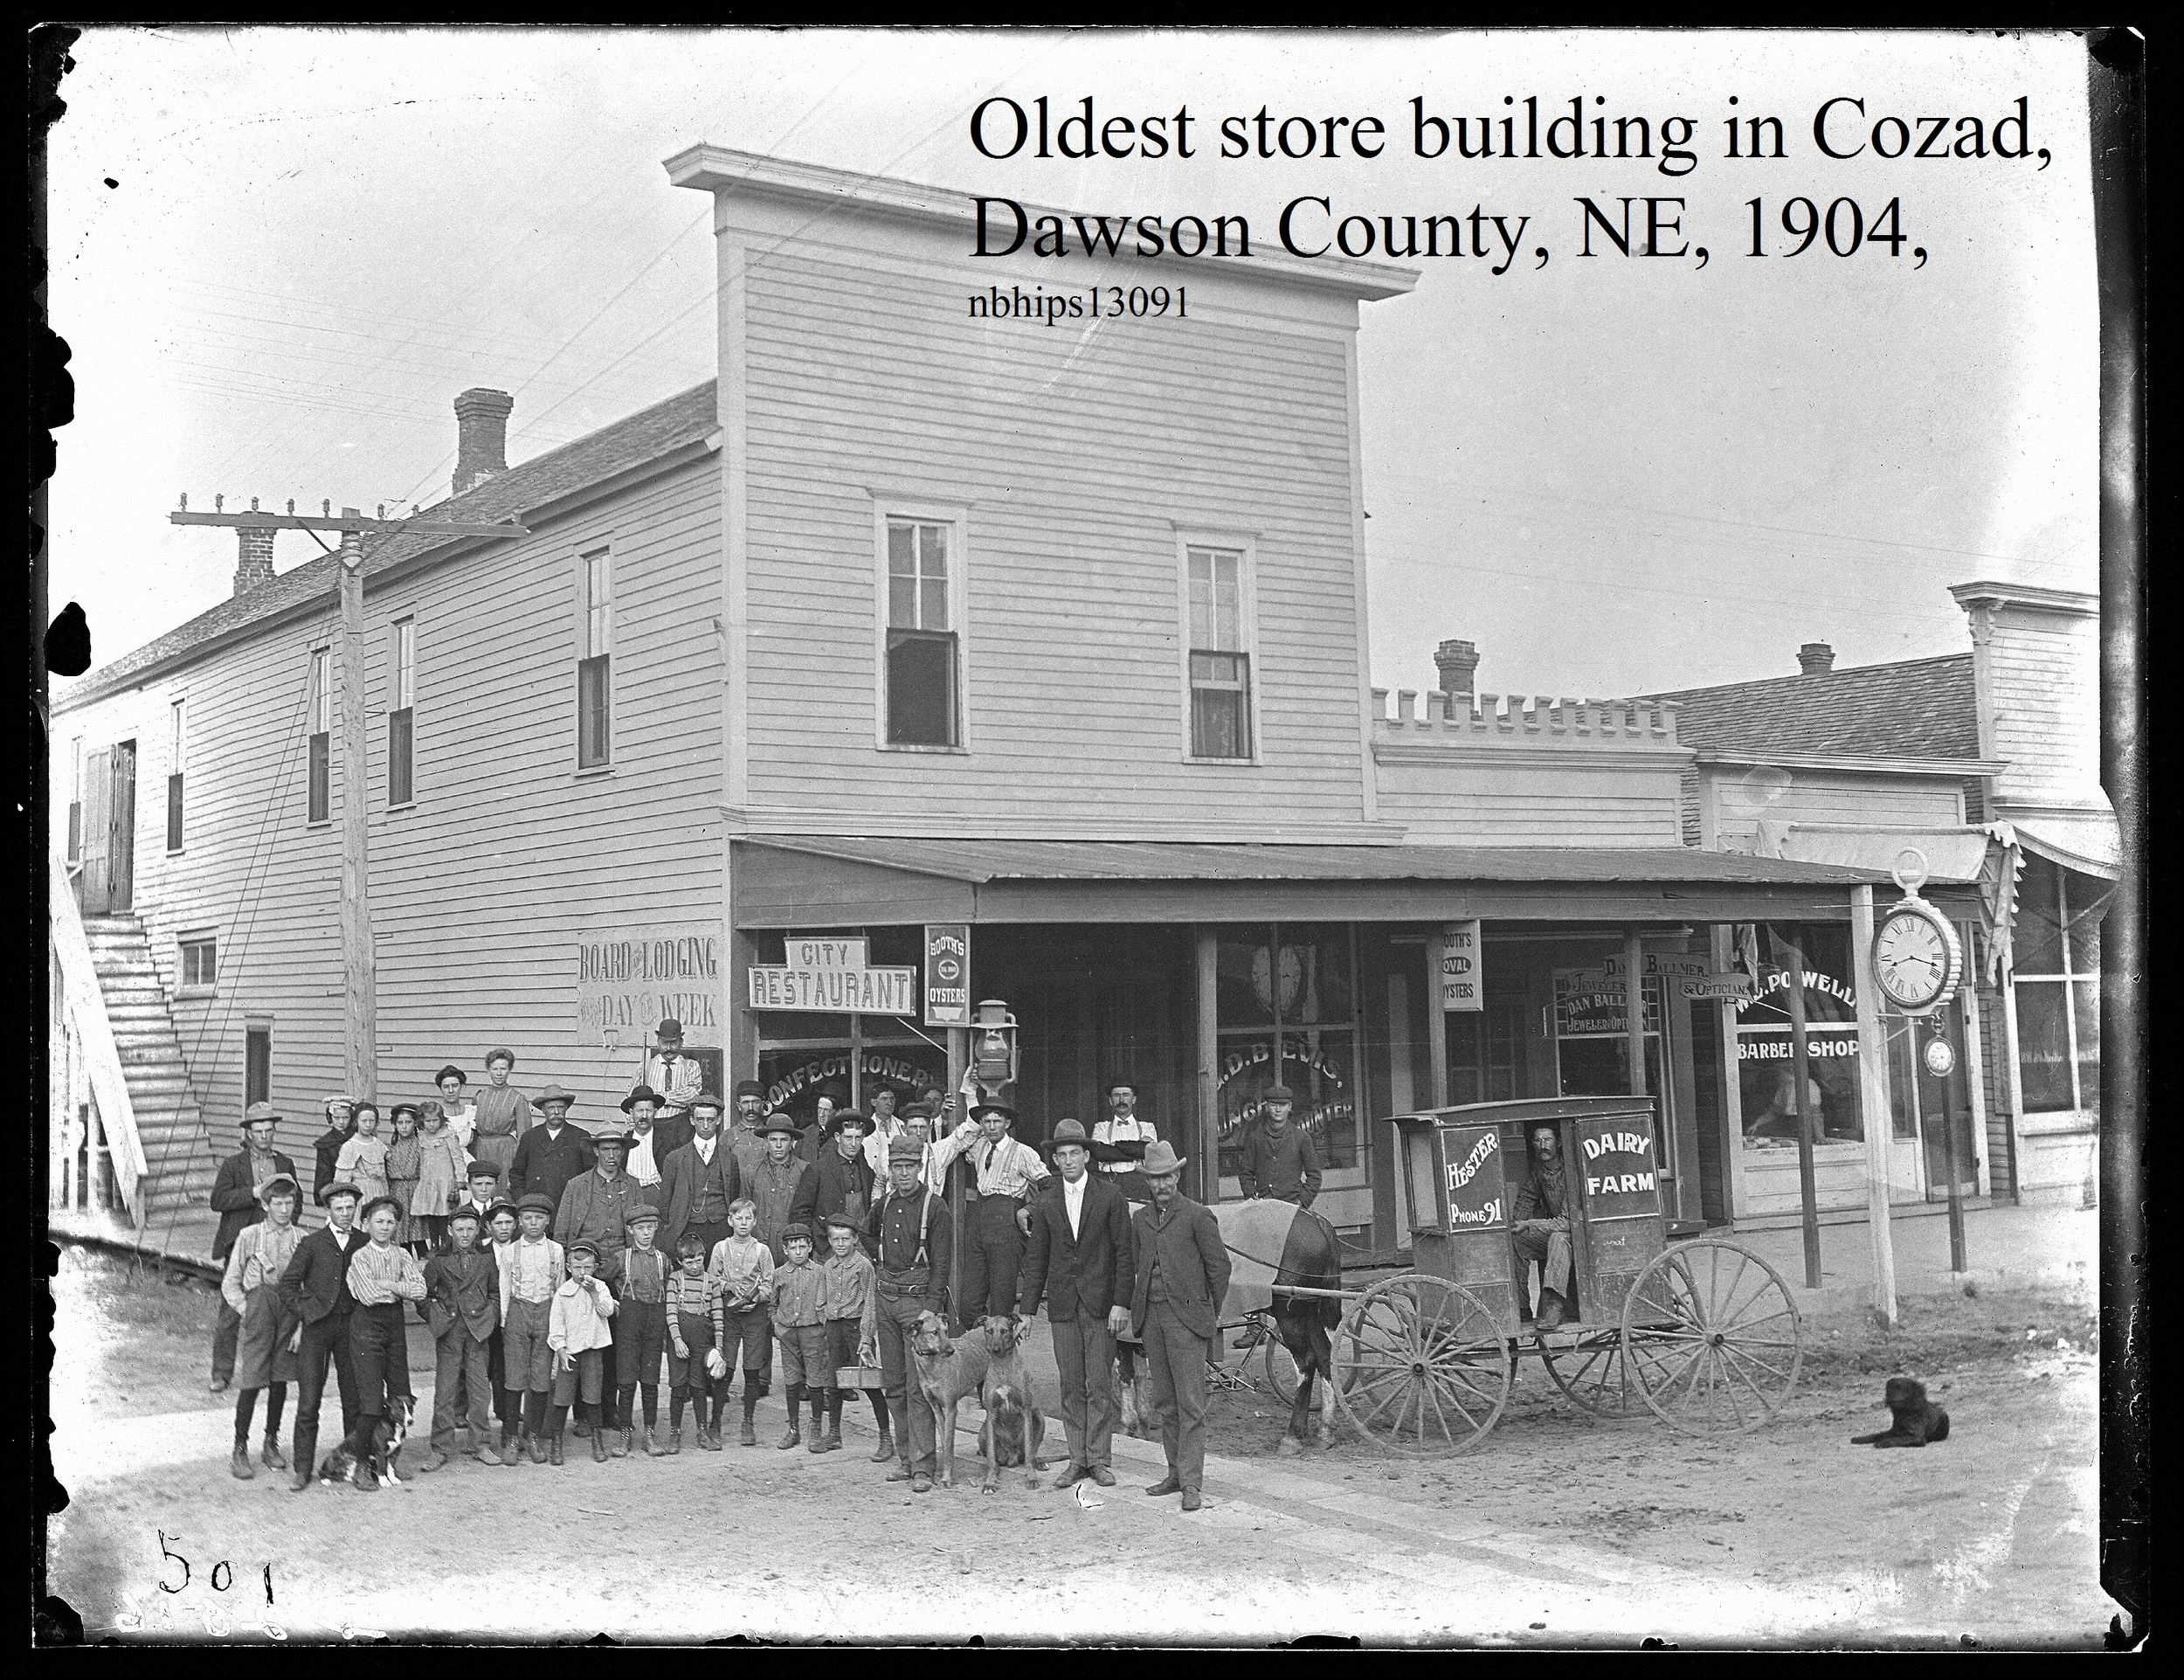 Butcher, Dawson County, Cozad, Oldest store building, 1904, lady in store window.jpg